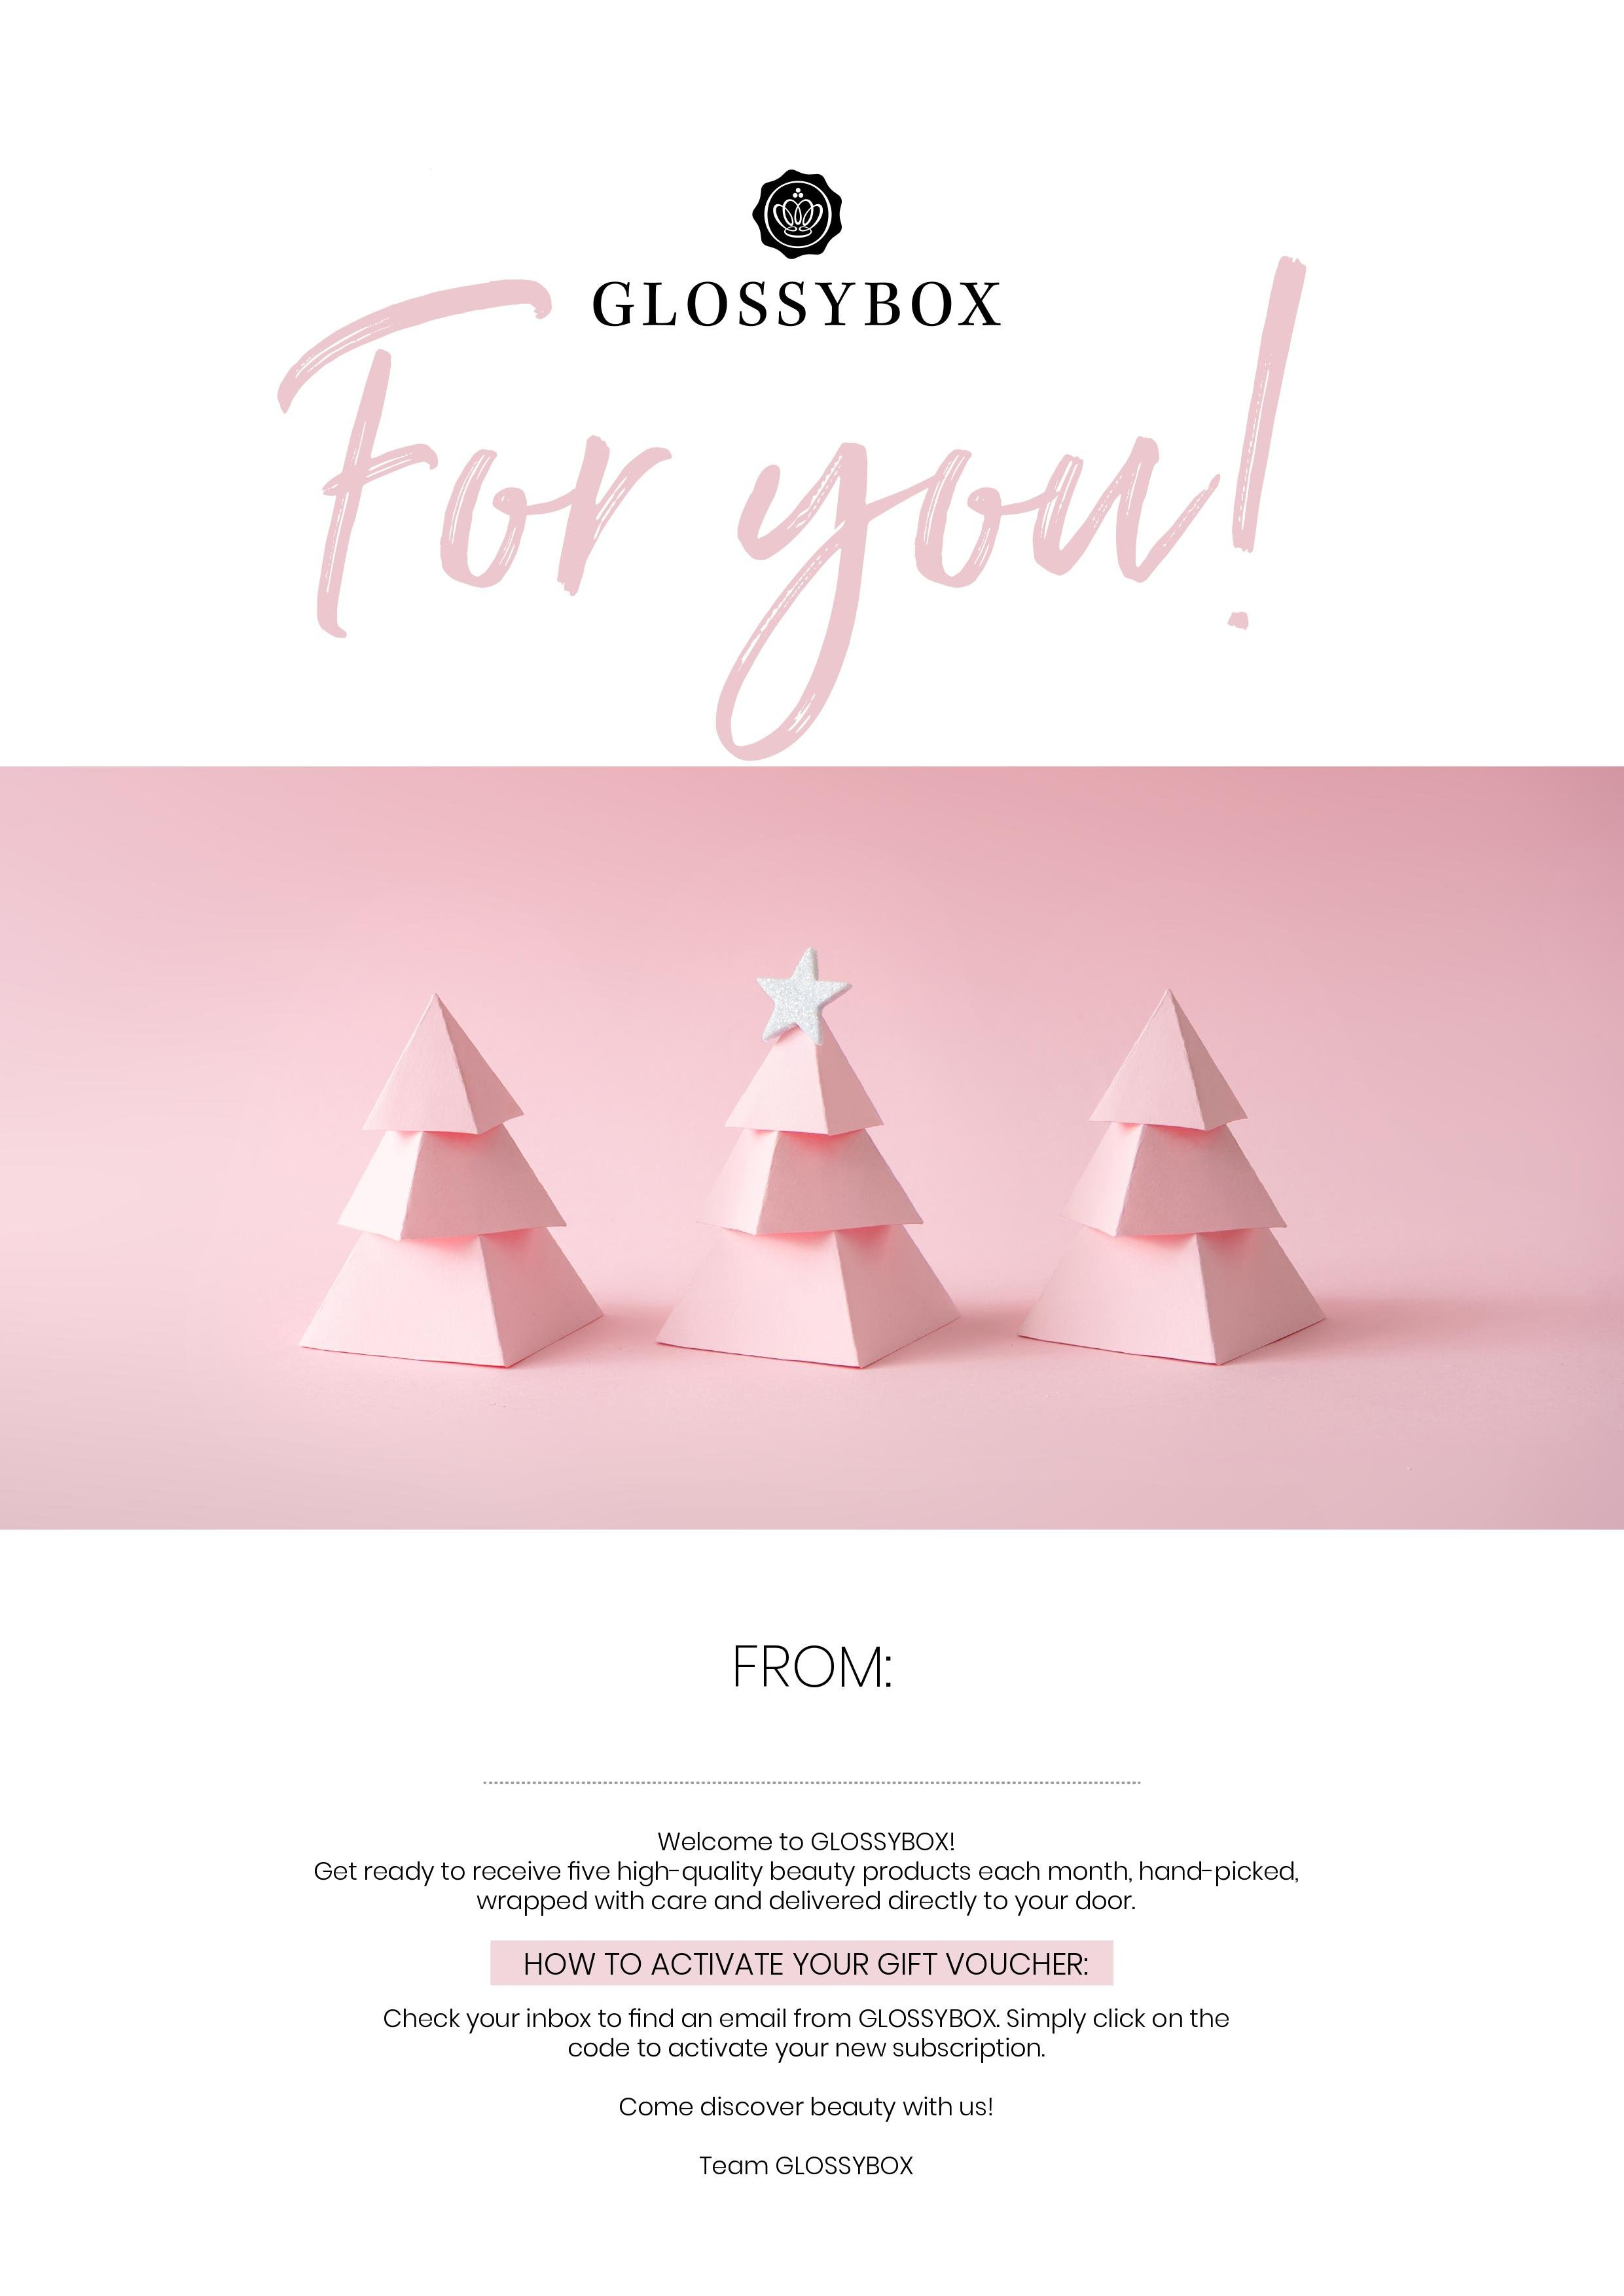 glossybox-egift-voucher-printable-card-christmas